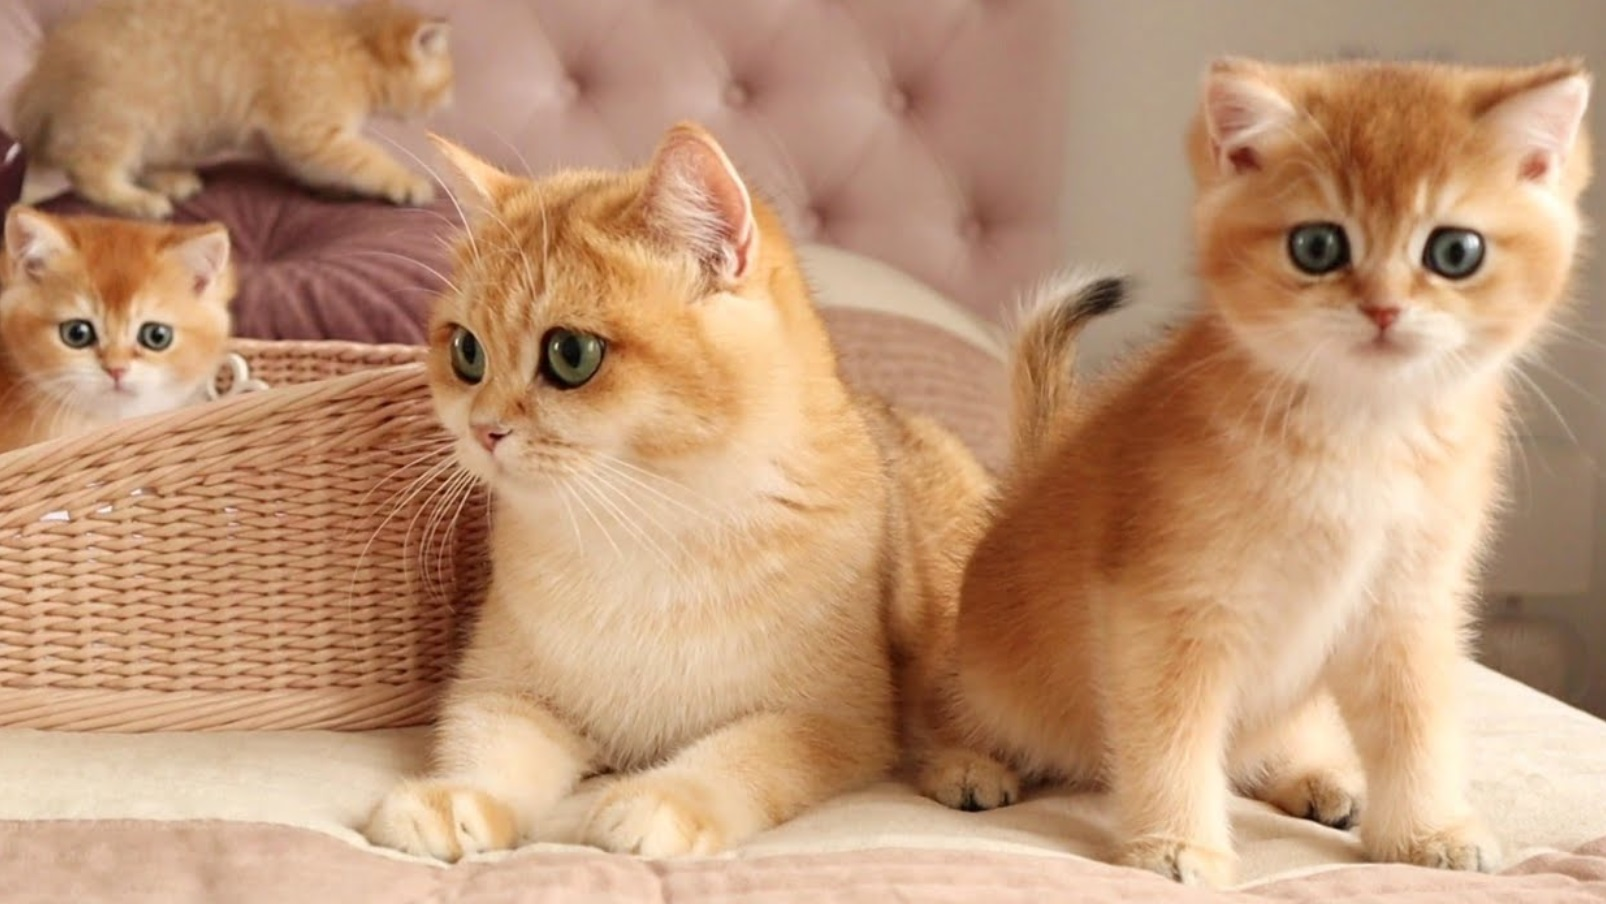 8 Minutes With These Cute Kittens